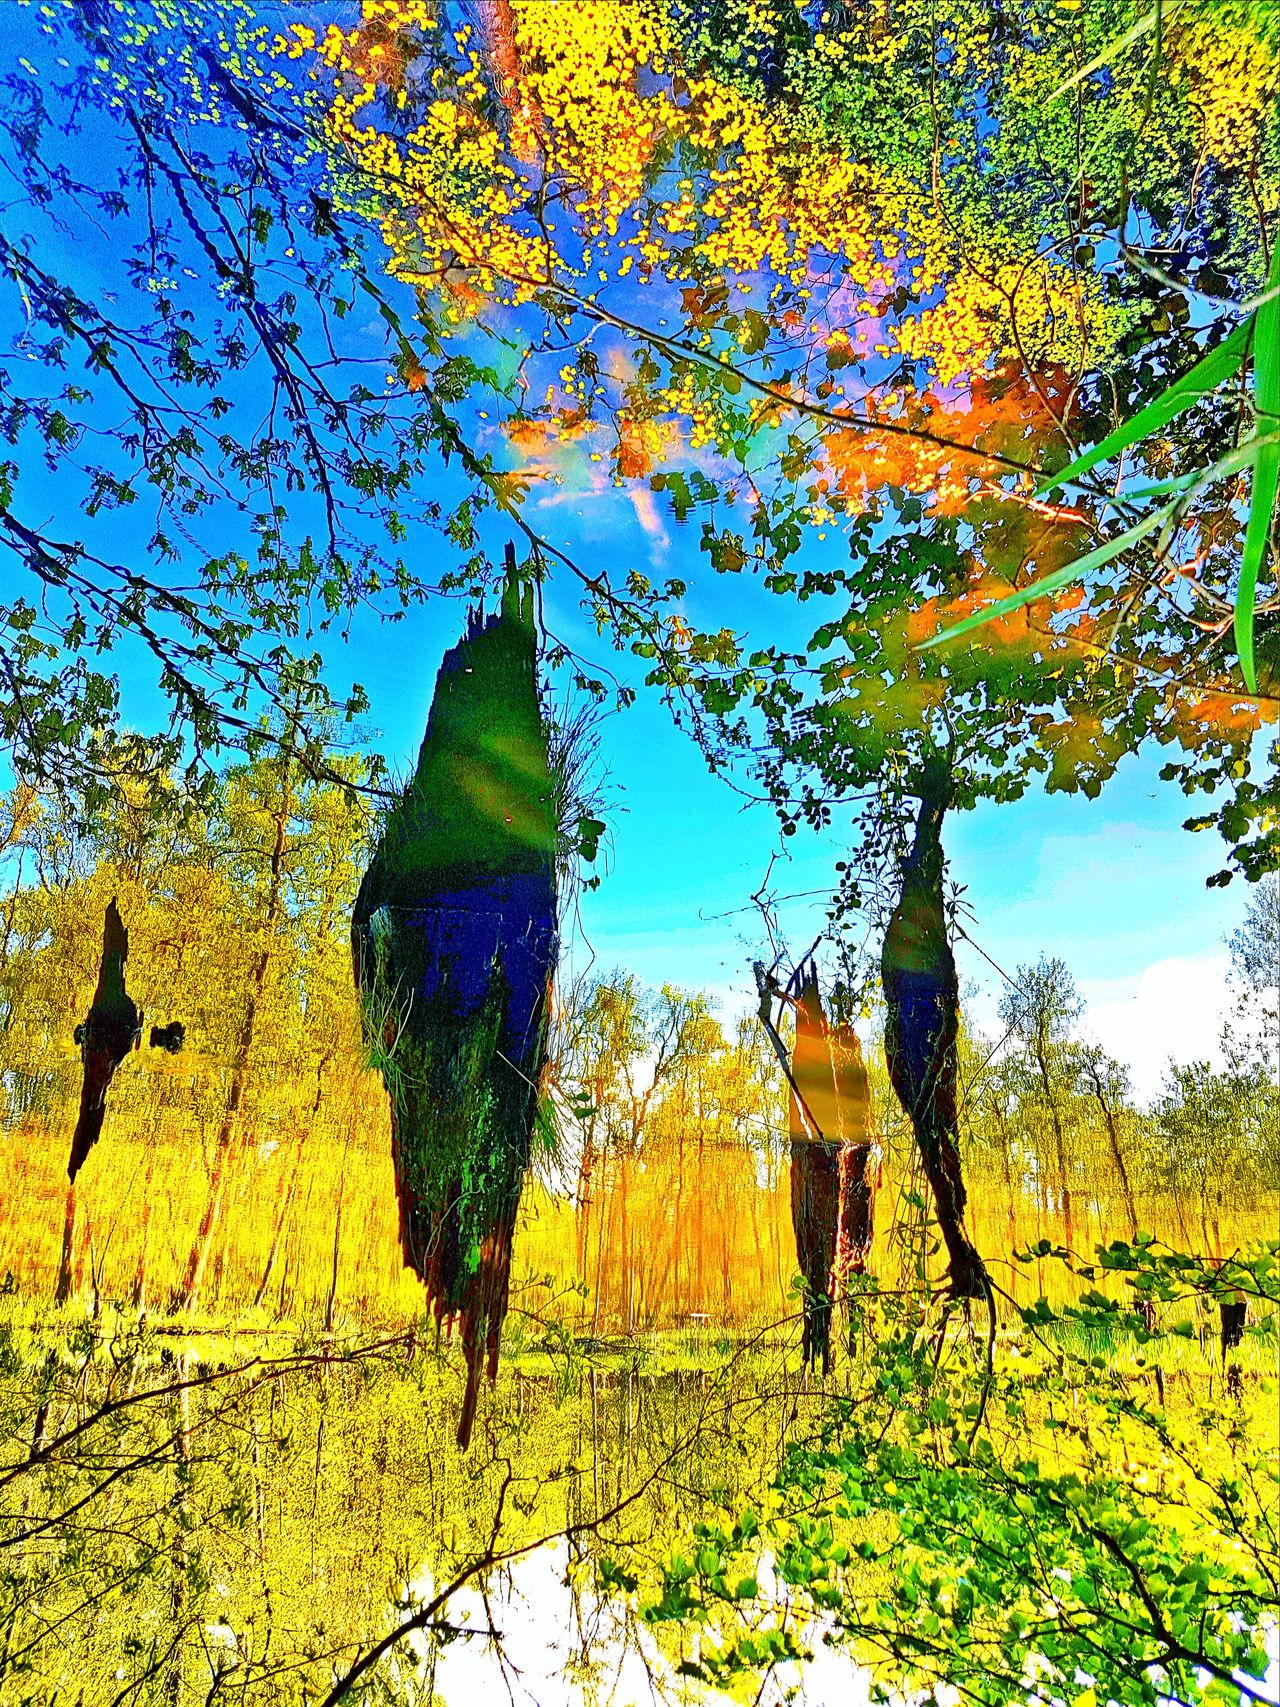 Traumtänzer Beauty In Nature No People Outdoors Sky Tree Nature Growth Multi Colored Smartphone Photography Abstract EyeEmNewHere Dream Surreal